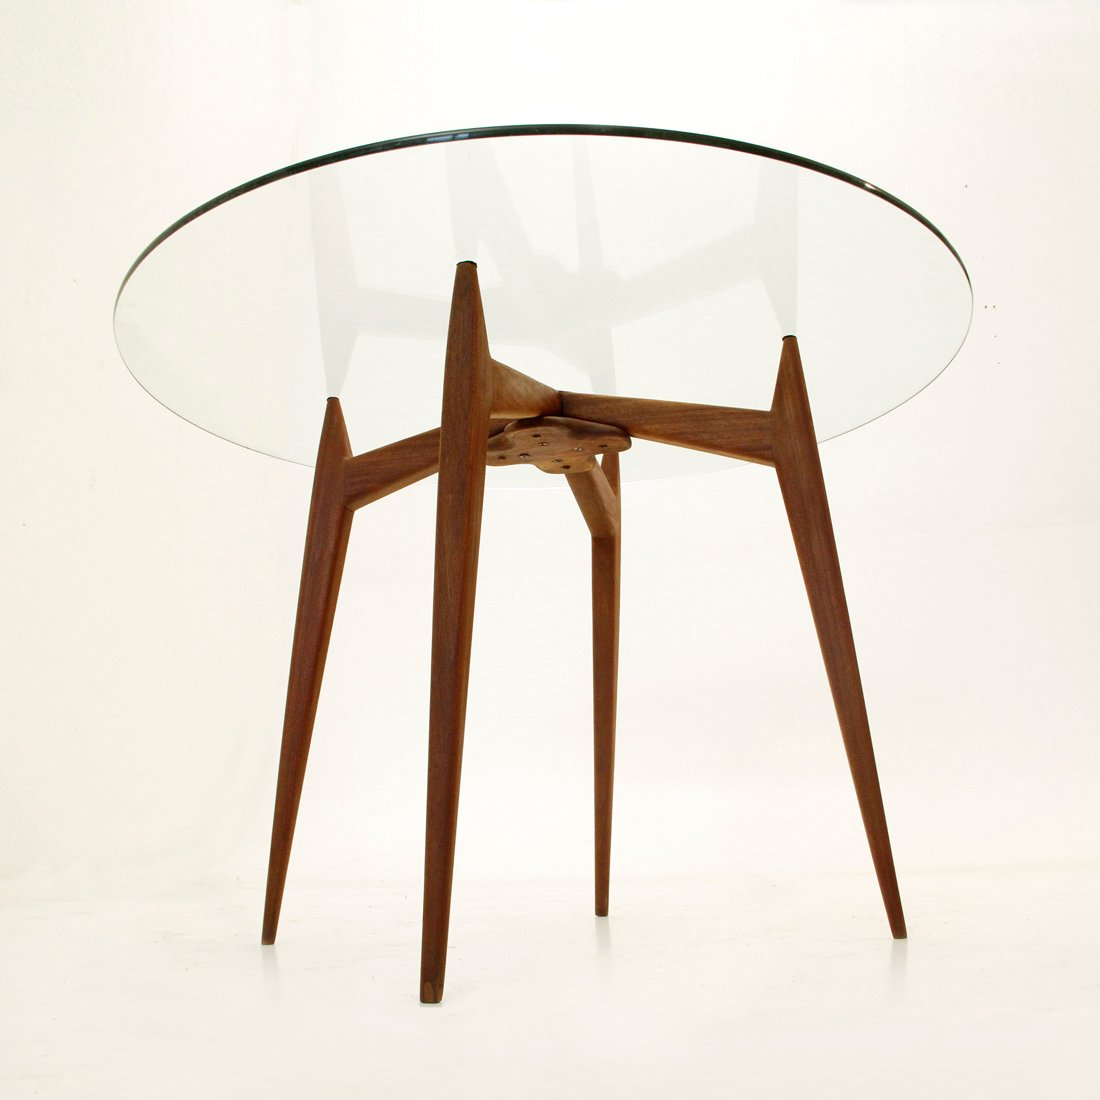 Italian Glass Dining Table Italian Mid Century Glass Dining Table 1950s For Sale At Pamono